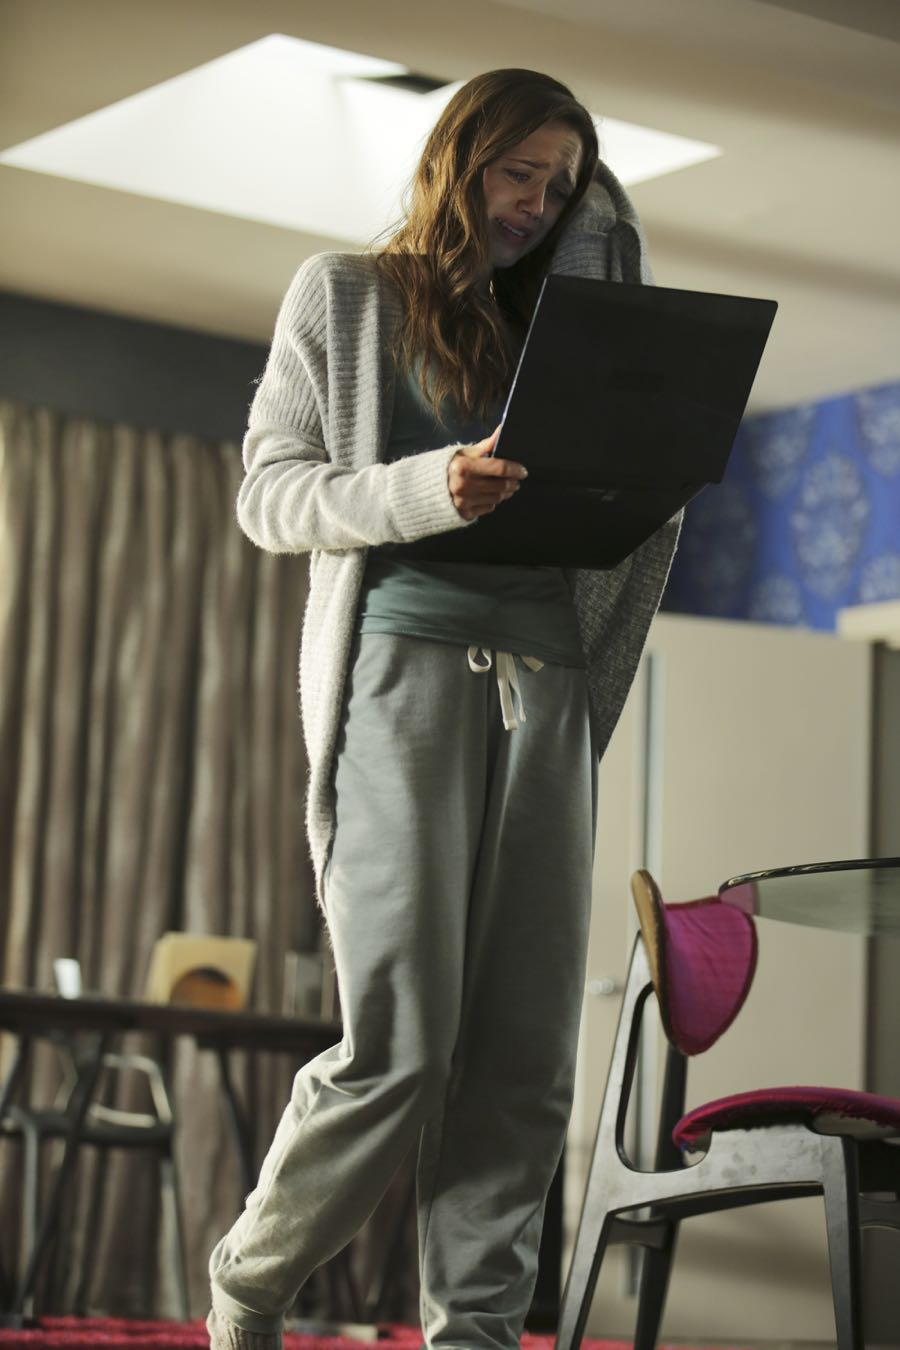 """GUILT - """"Exit Wounds"""" - Grace spirals after reading hateful remarks about herself on the internet, on an all-new episode of """"Guilt,"""" airing MONDAY, JUNE 27 (9:00 - 10:00 p.m. EDT), on Freeform. (Freeform/Angus Young) DAISY HEAD"""